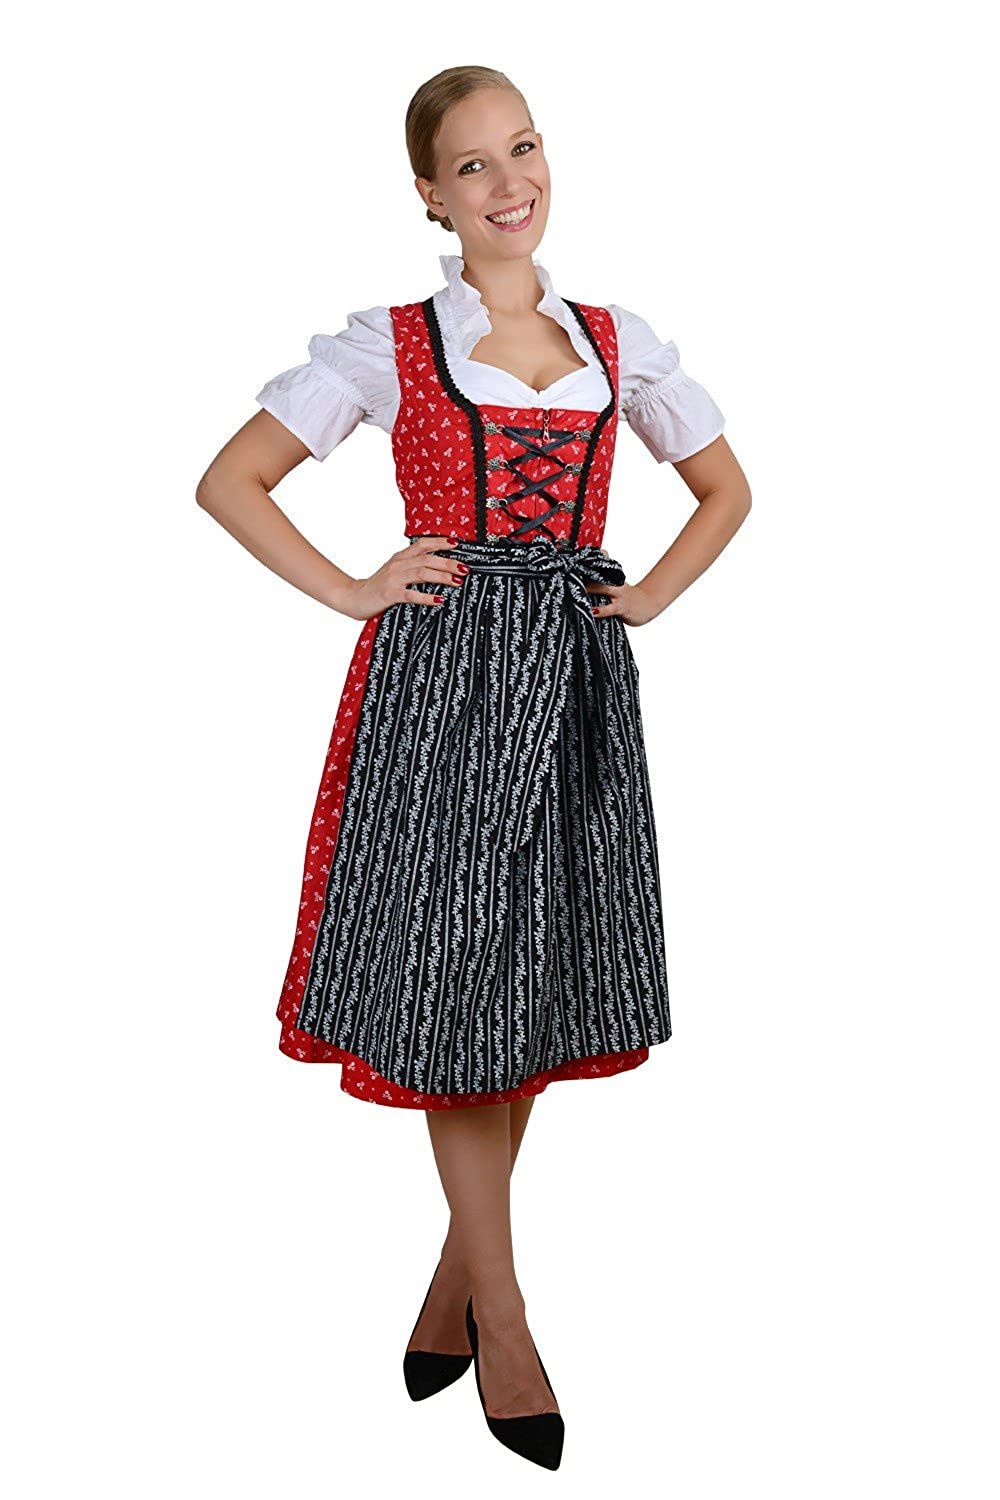 Edelnice Trachtenmoden Bavarian Women's Midi Dirndl Dress 3-pcs with Apron+Blouse Black red